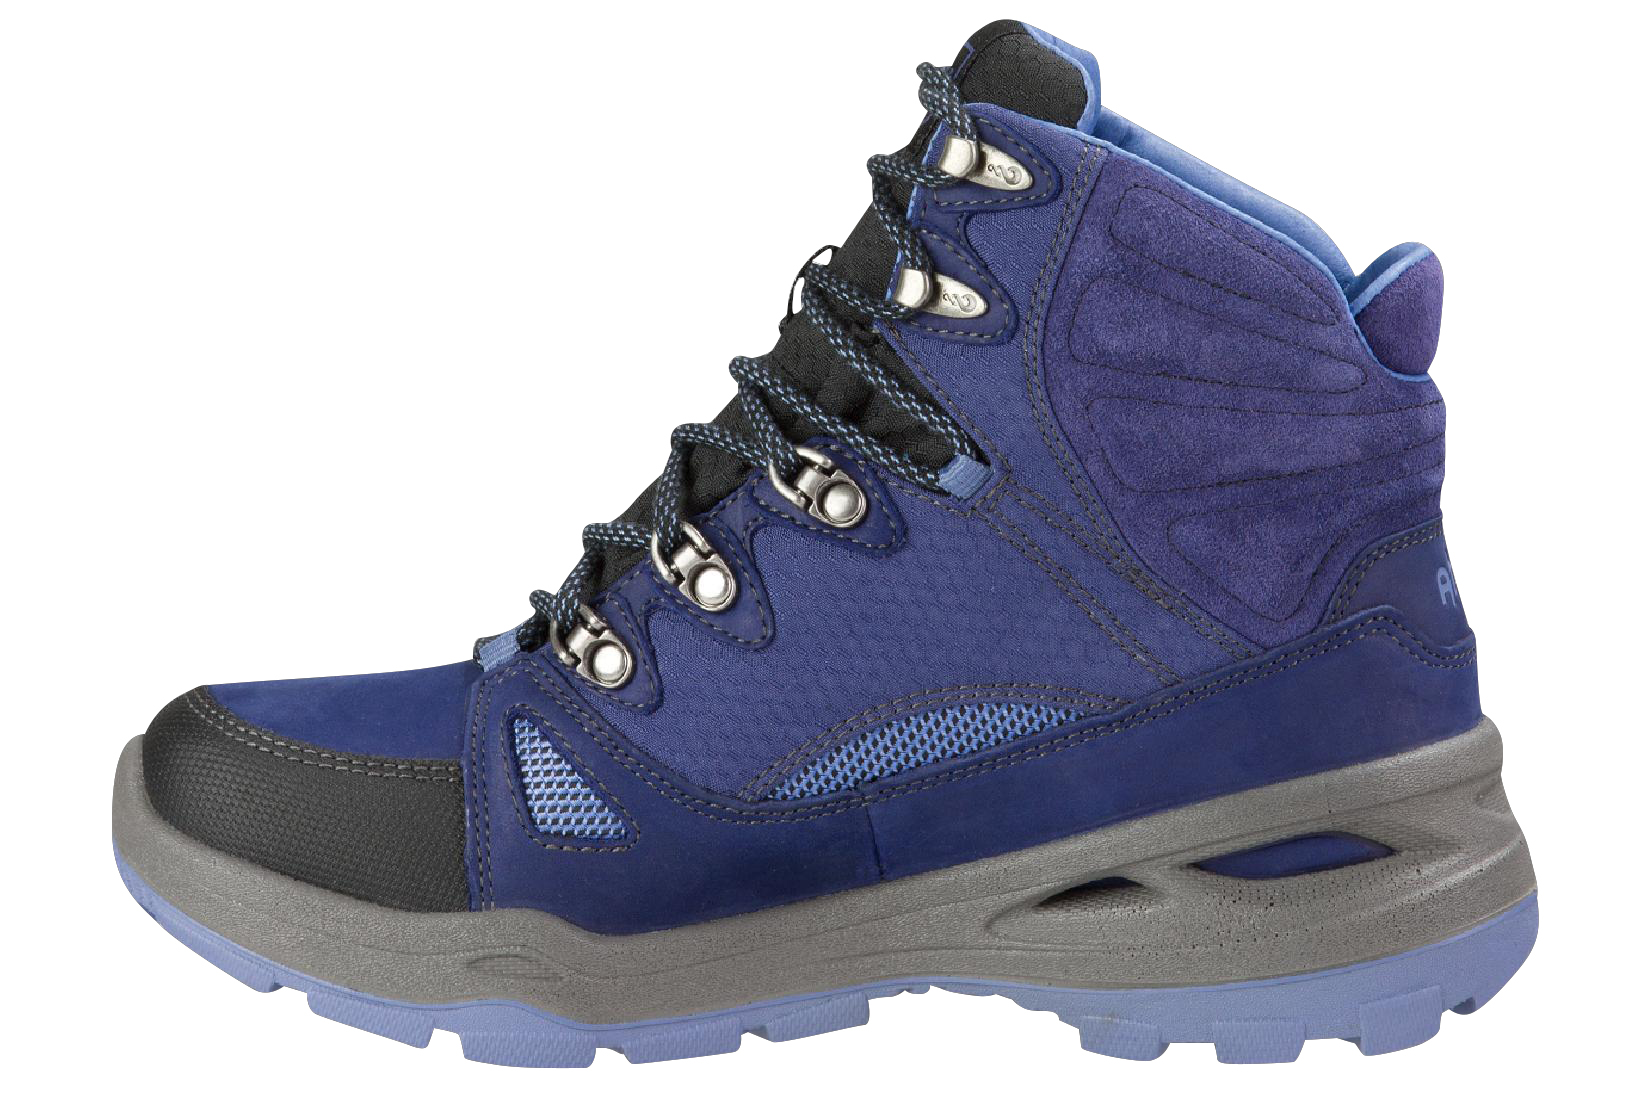 Ahnu North Peak eVent Hiking Boot – blue